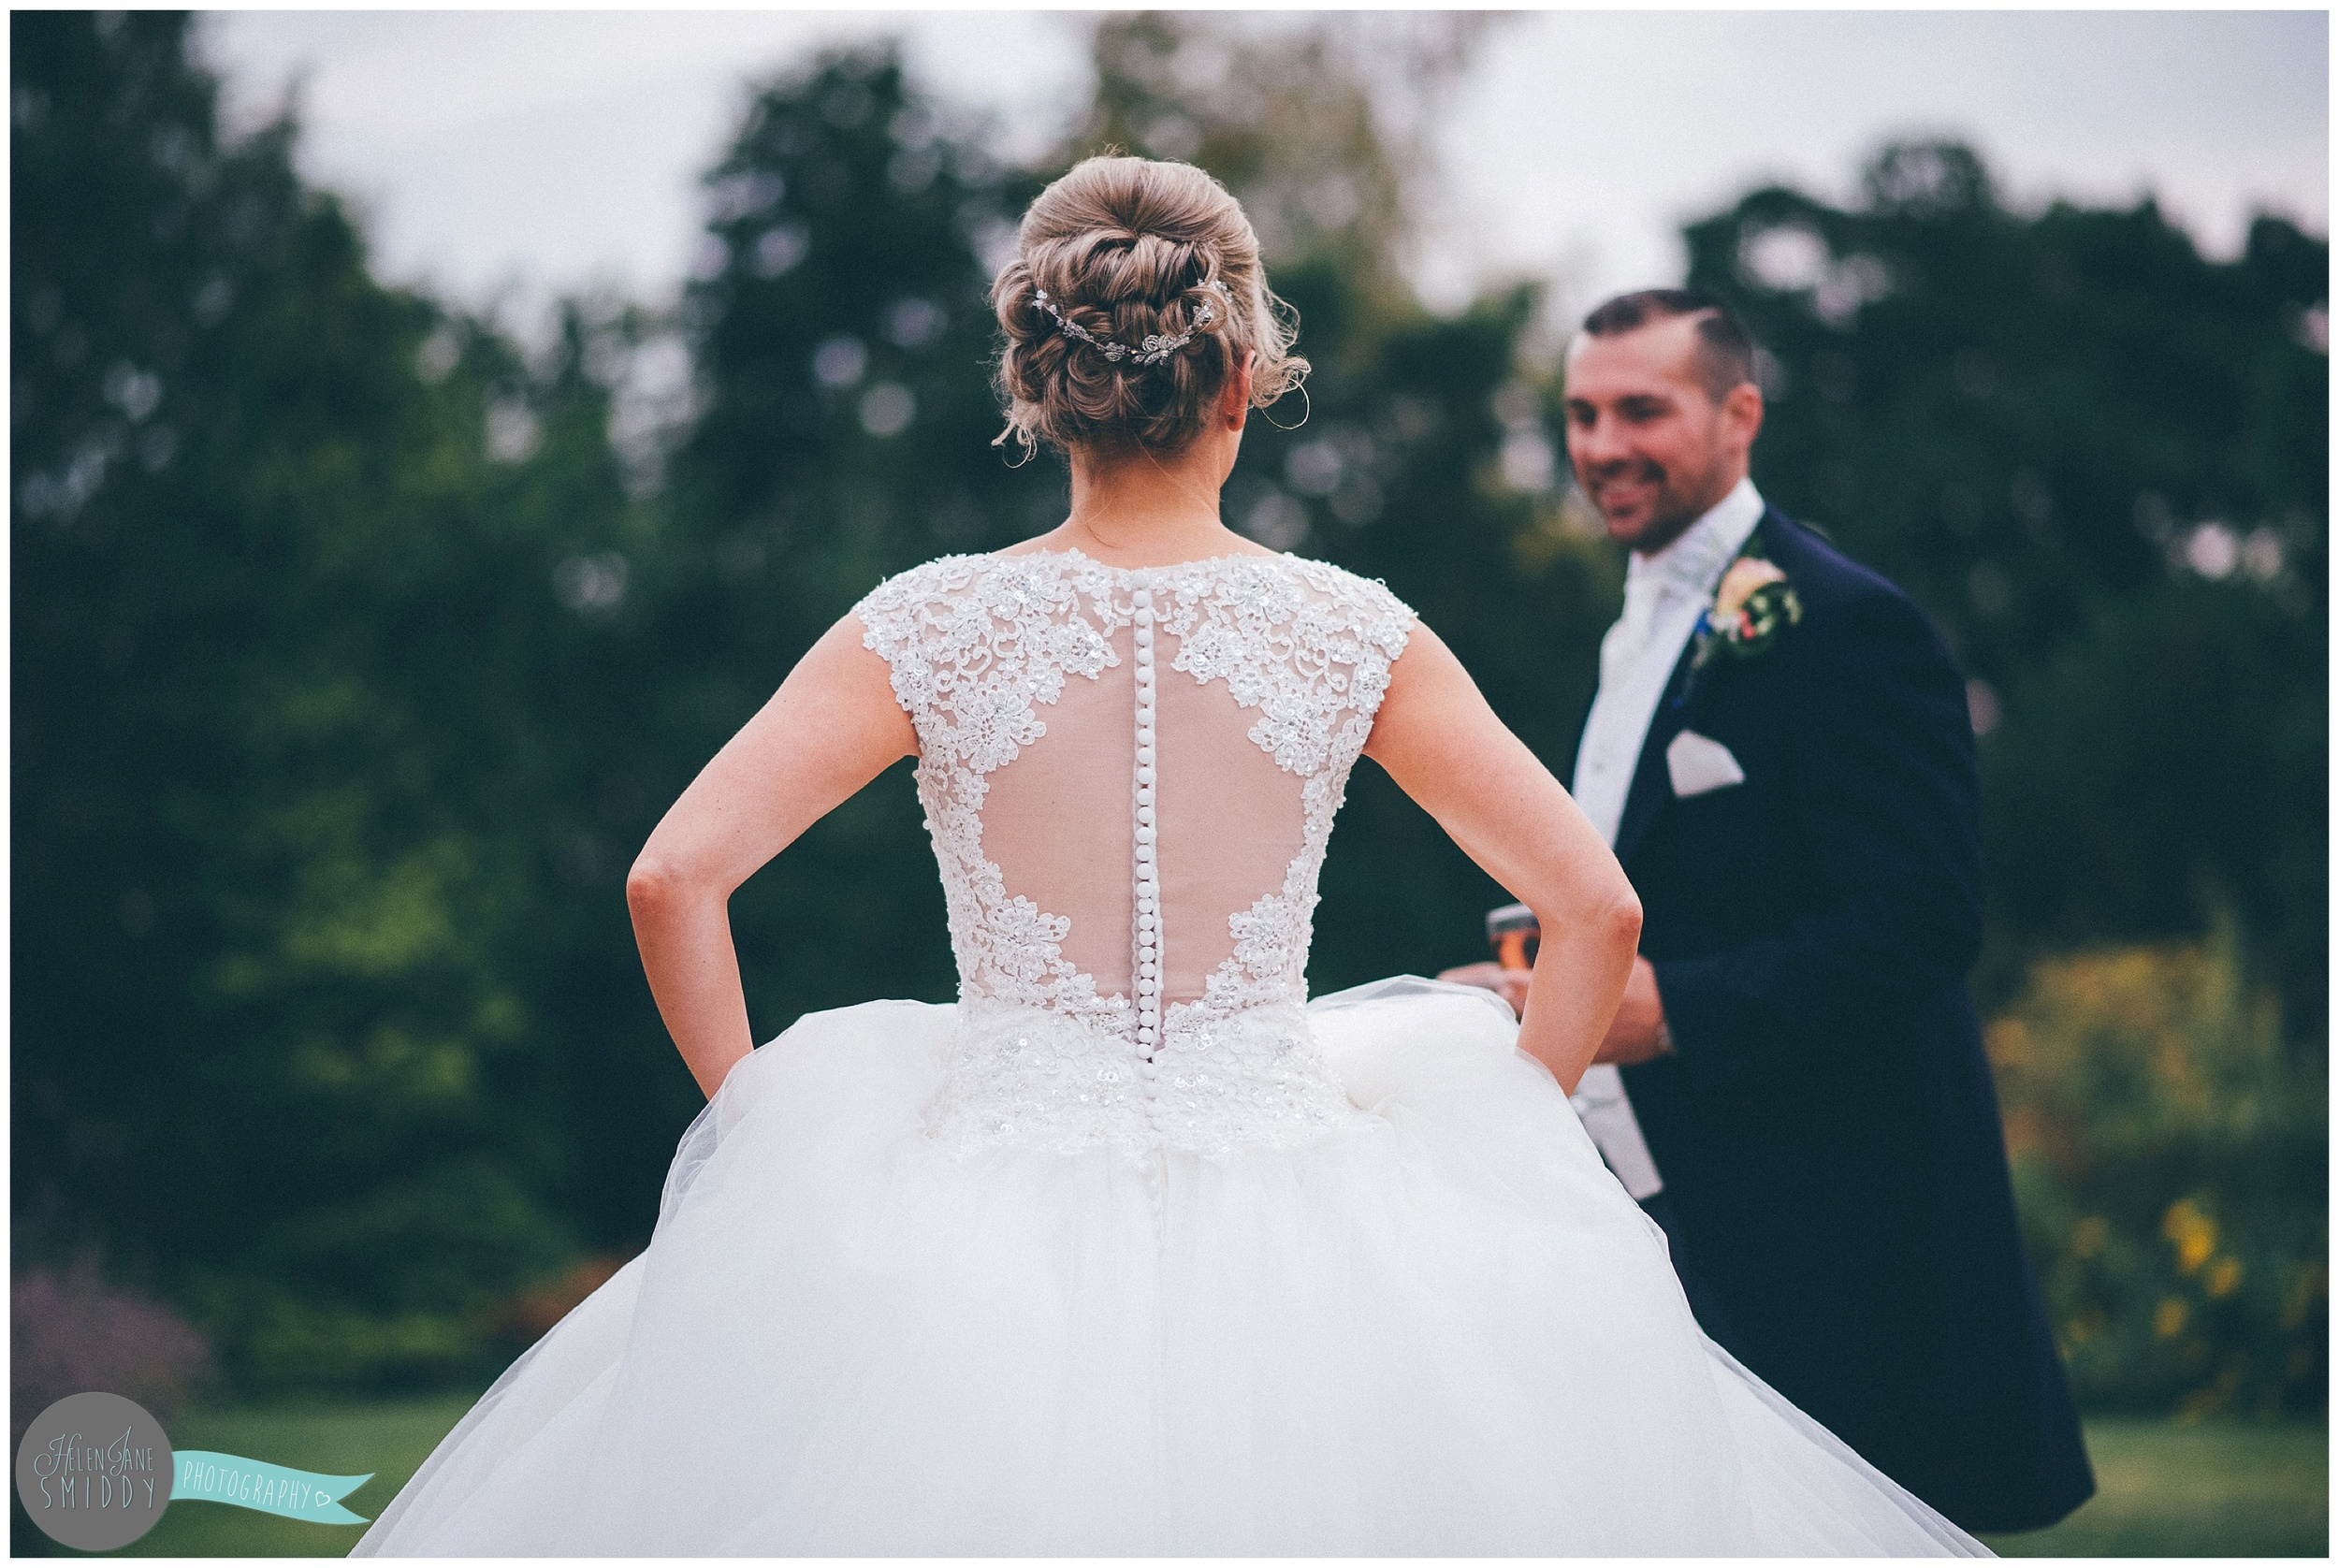 rowton-hall-cheshire-chester-wedding-photography-family-love-beautiful-spa-bride-groom-macarons-gown